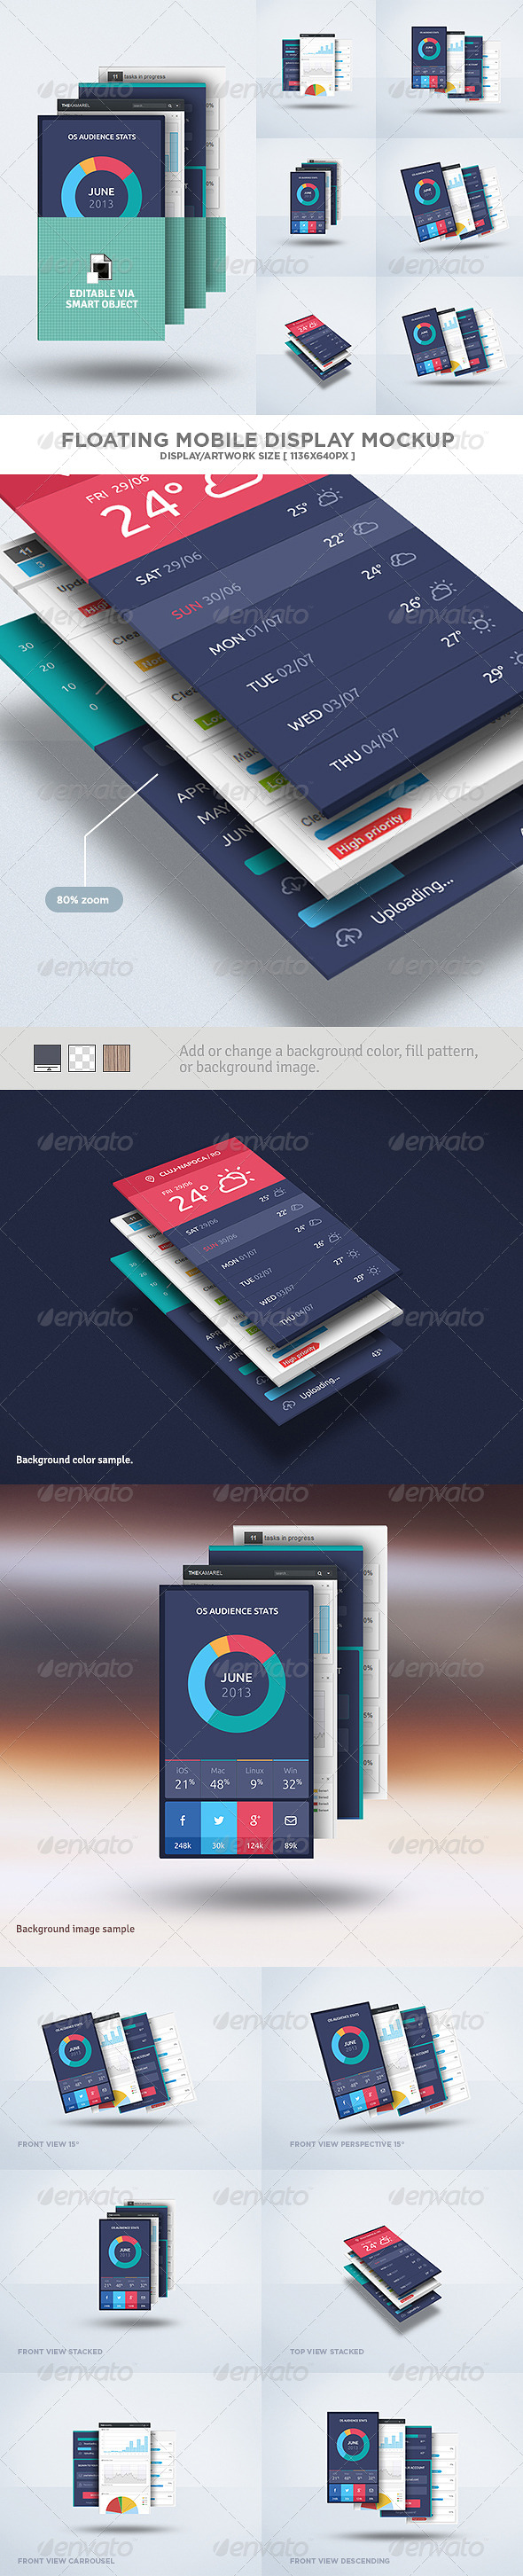 Floating Mobile Display Mock-Up - Mobile Displays